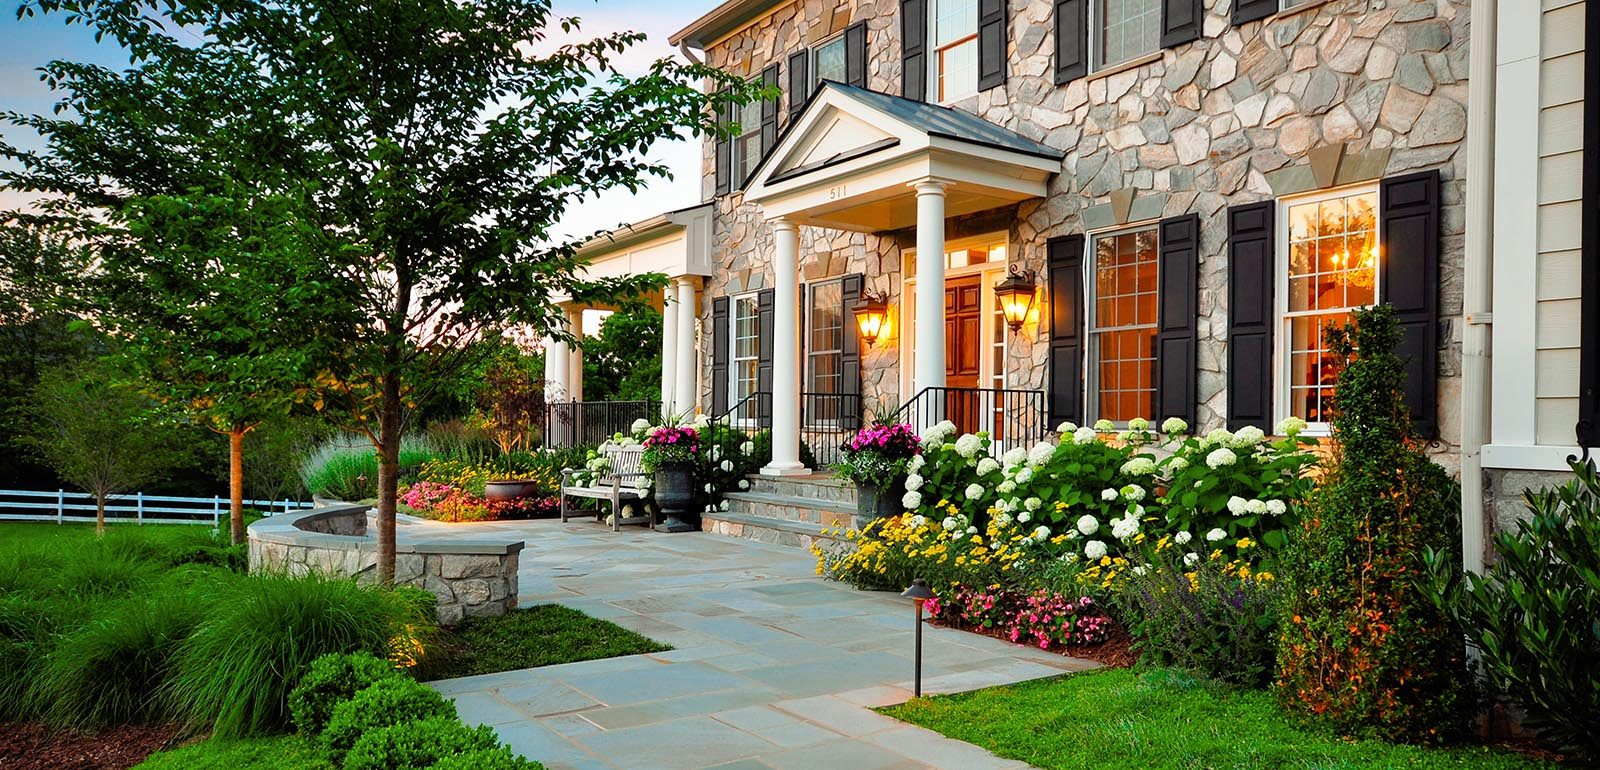 Beautiful house exterior and yard decorating with flowers and plants - Plant And Grow Trees